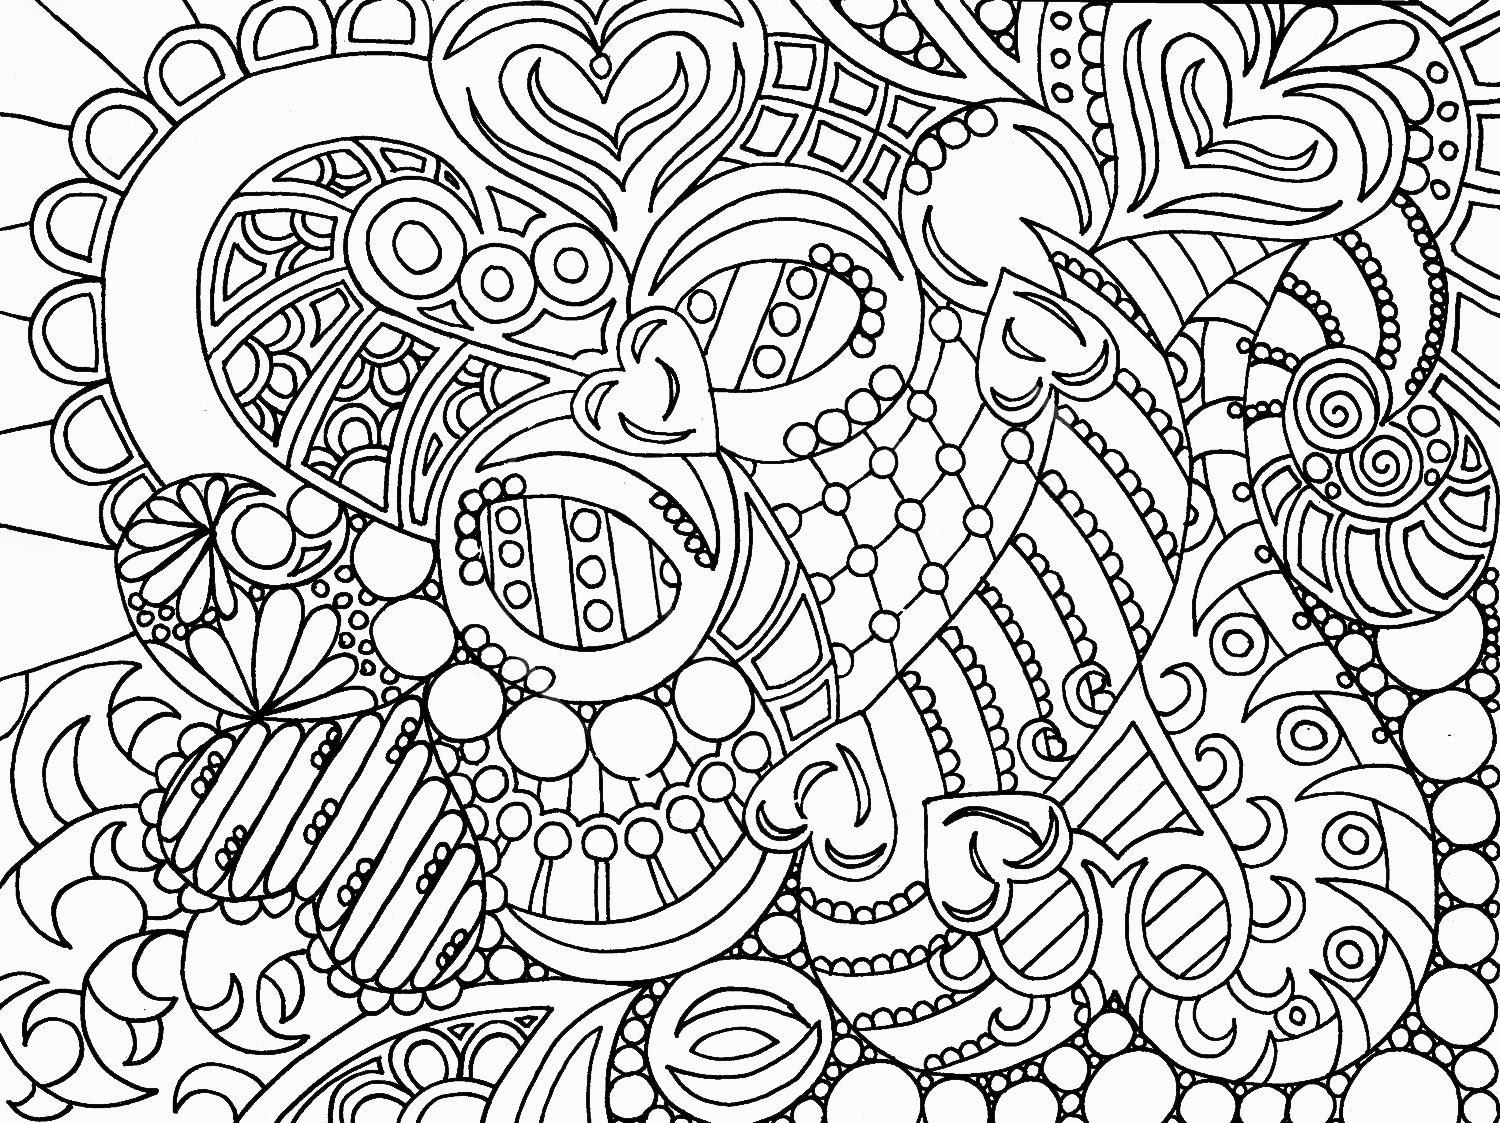 s abstract coloring pages - photo #19